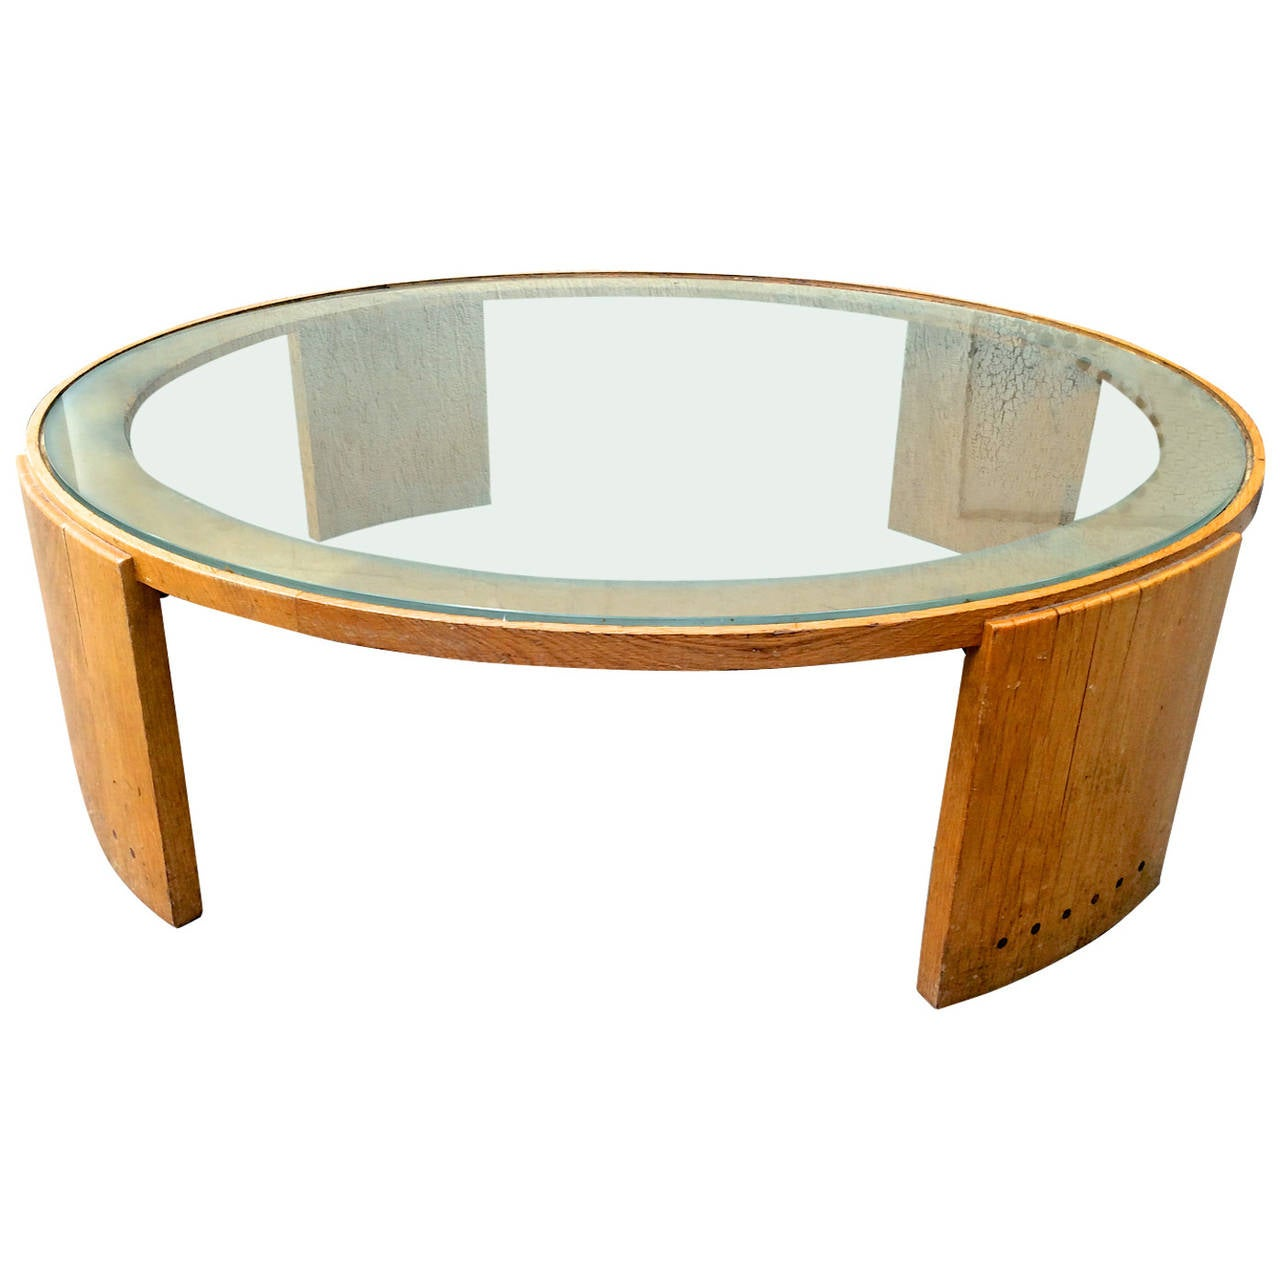 Jacques adnet very large round coffee table in oak and glass top at 1stdibs Coffee tables glass top